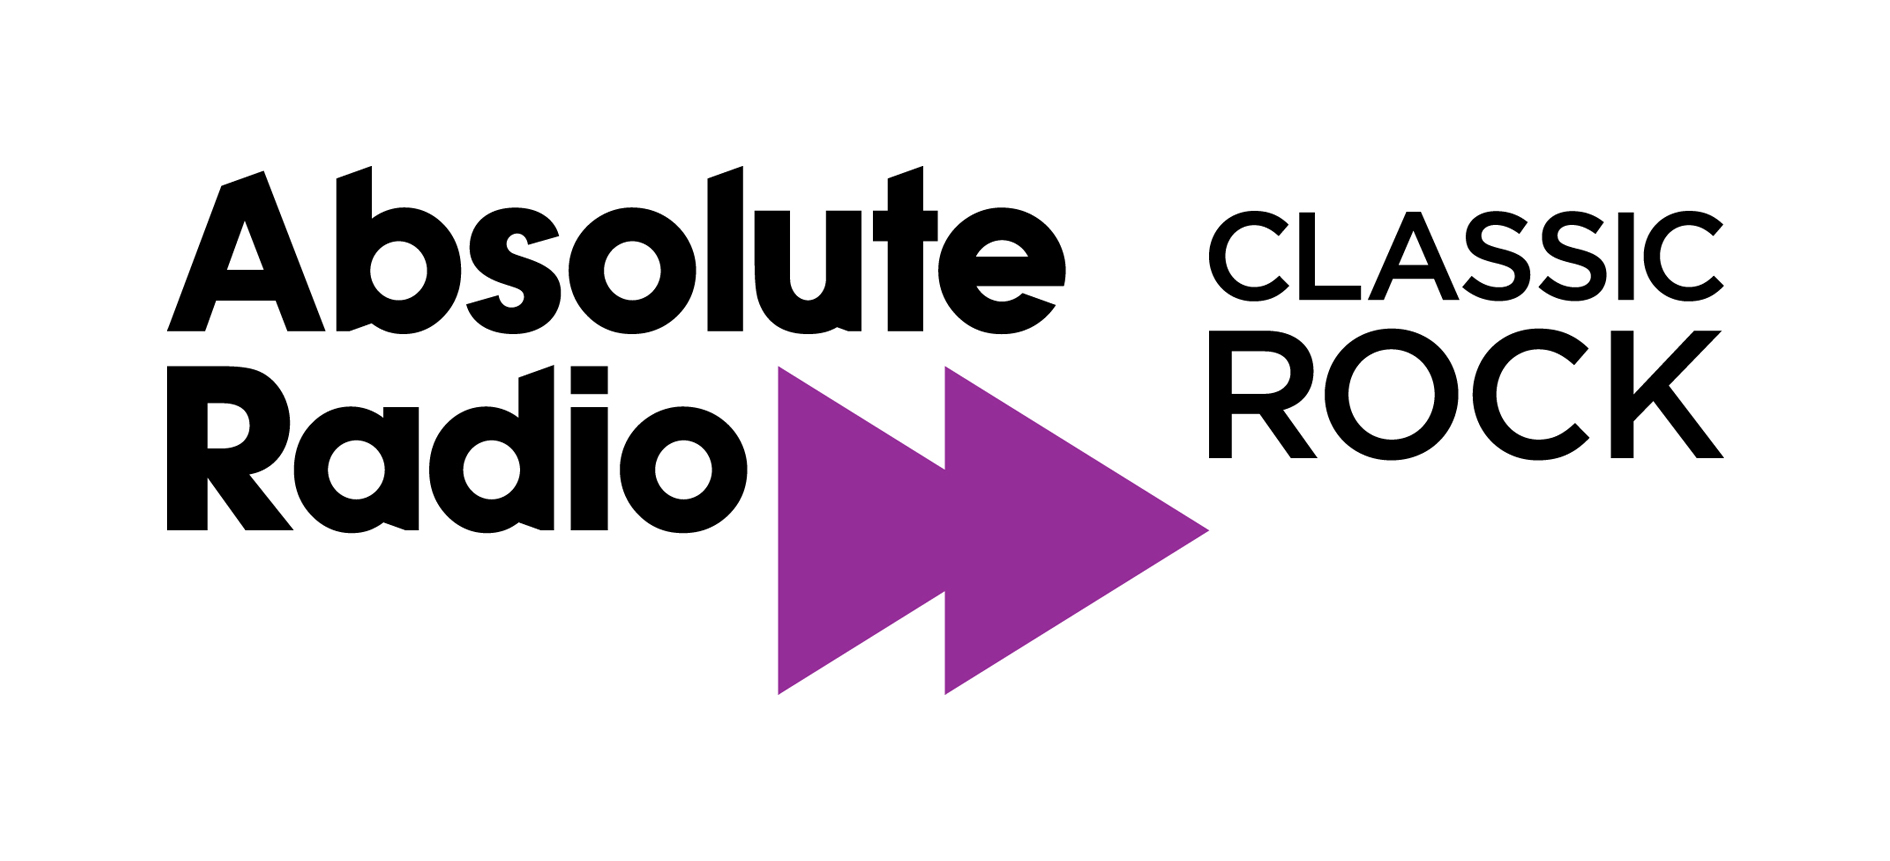 Absolute Radio Classic Rock logo